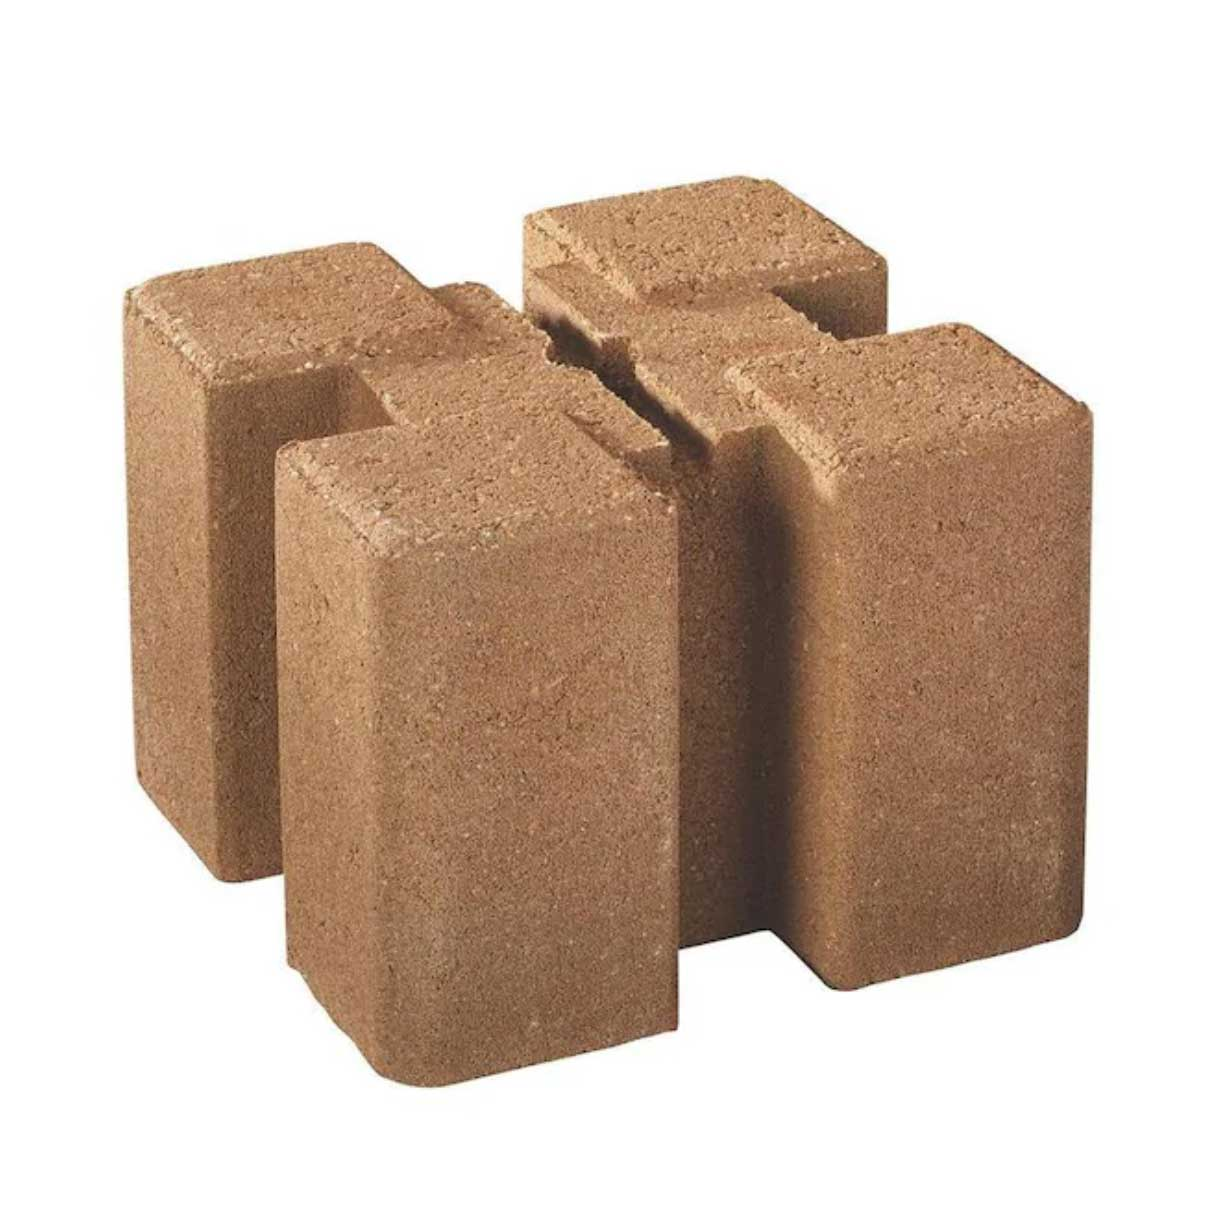 lowes-concrete-garden-bed-block